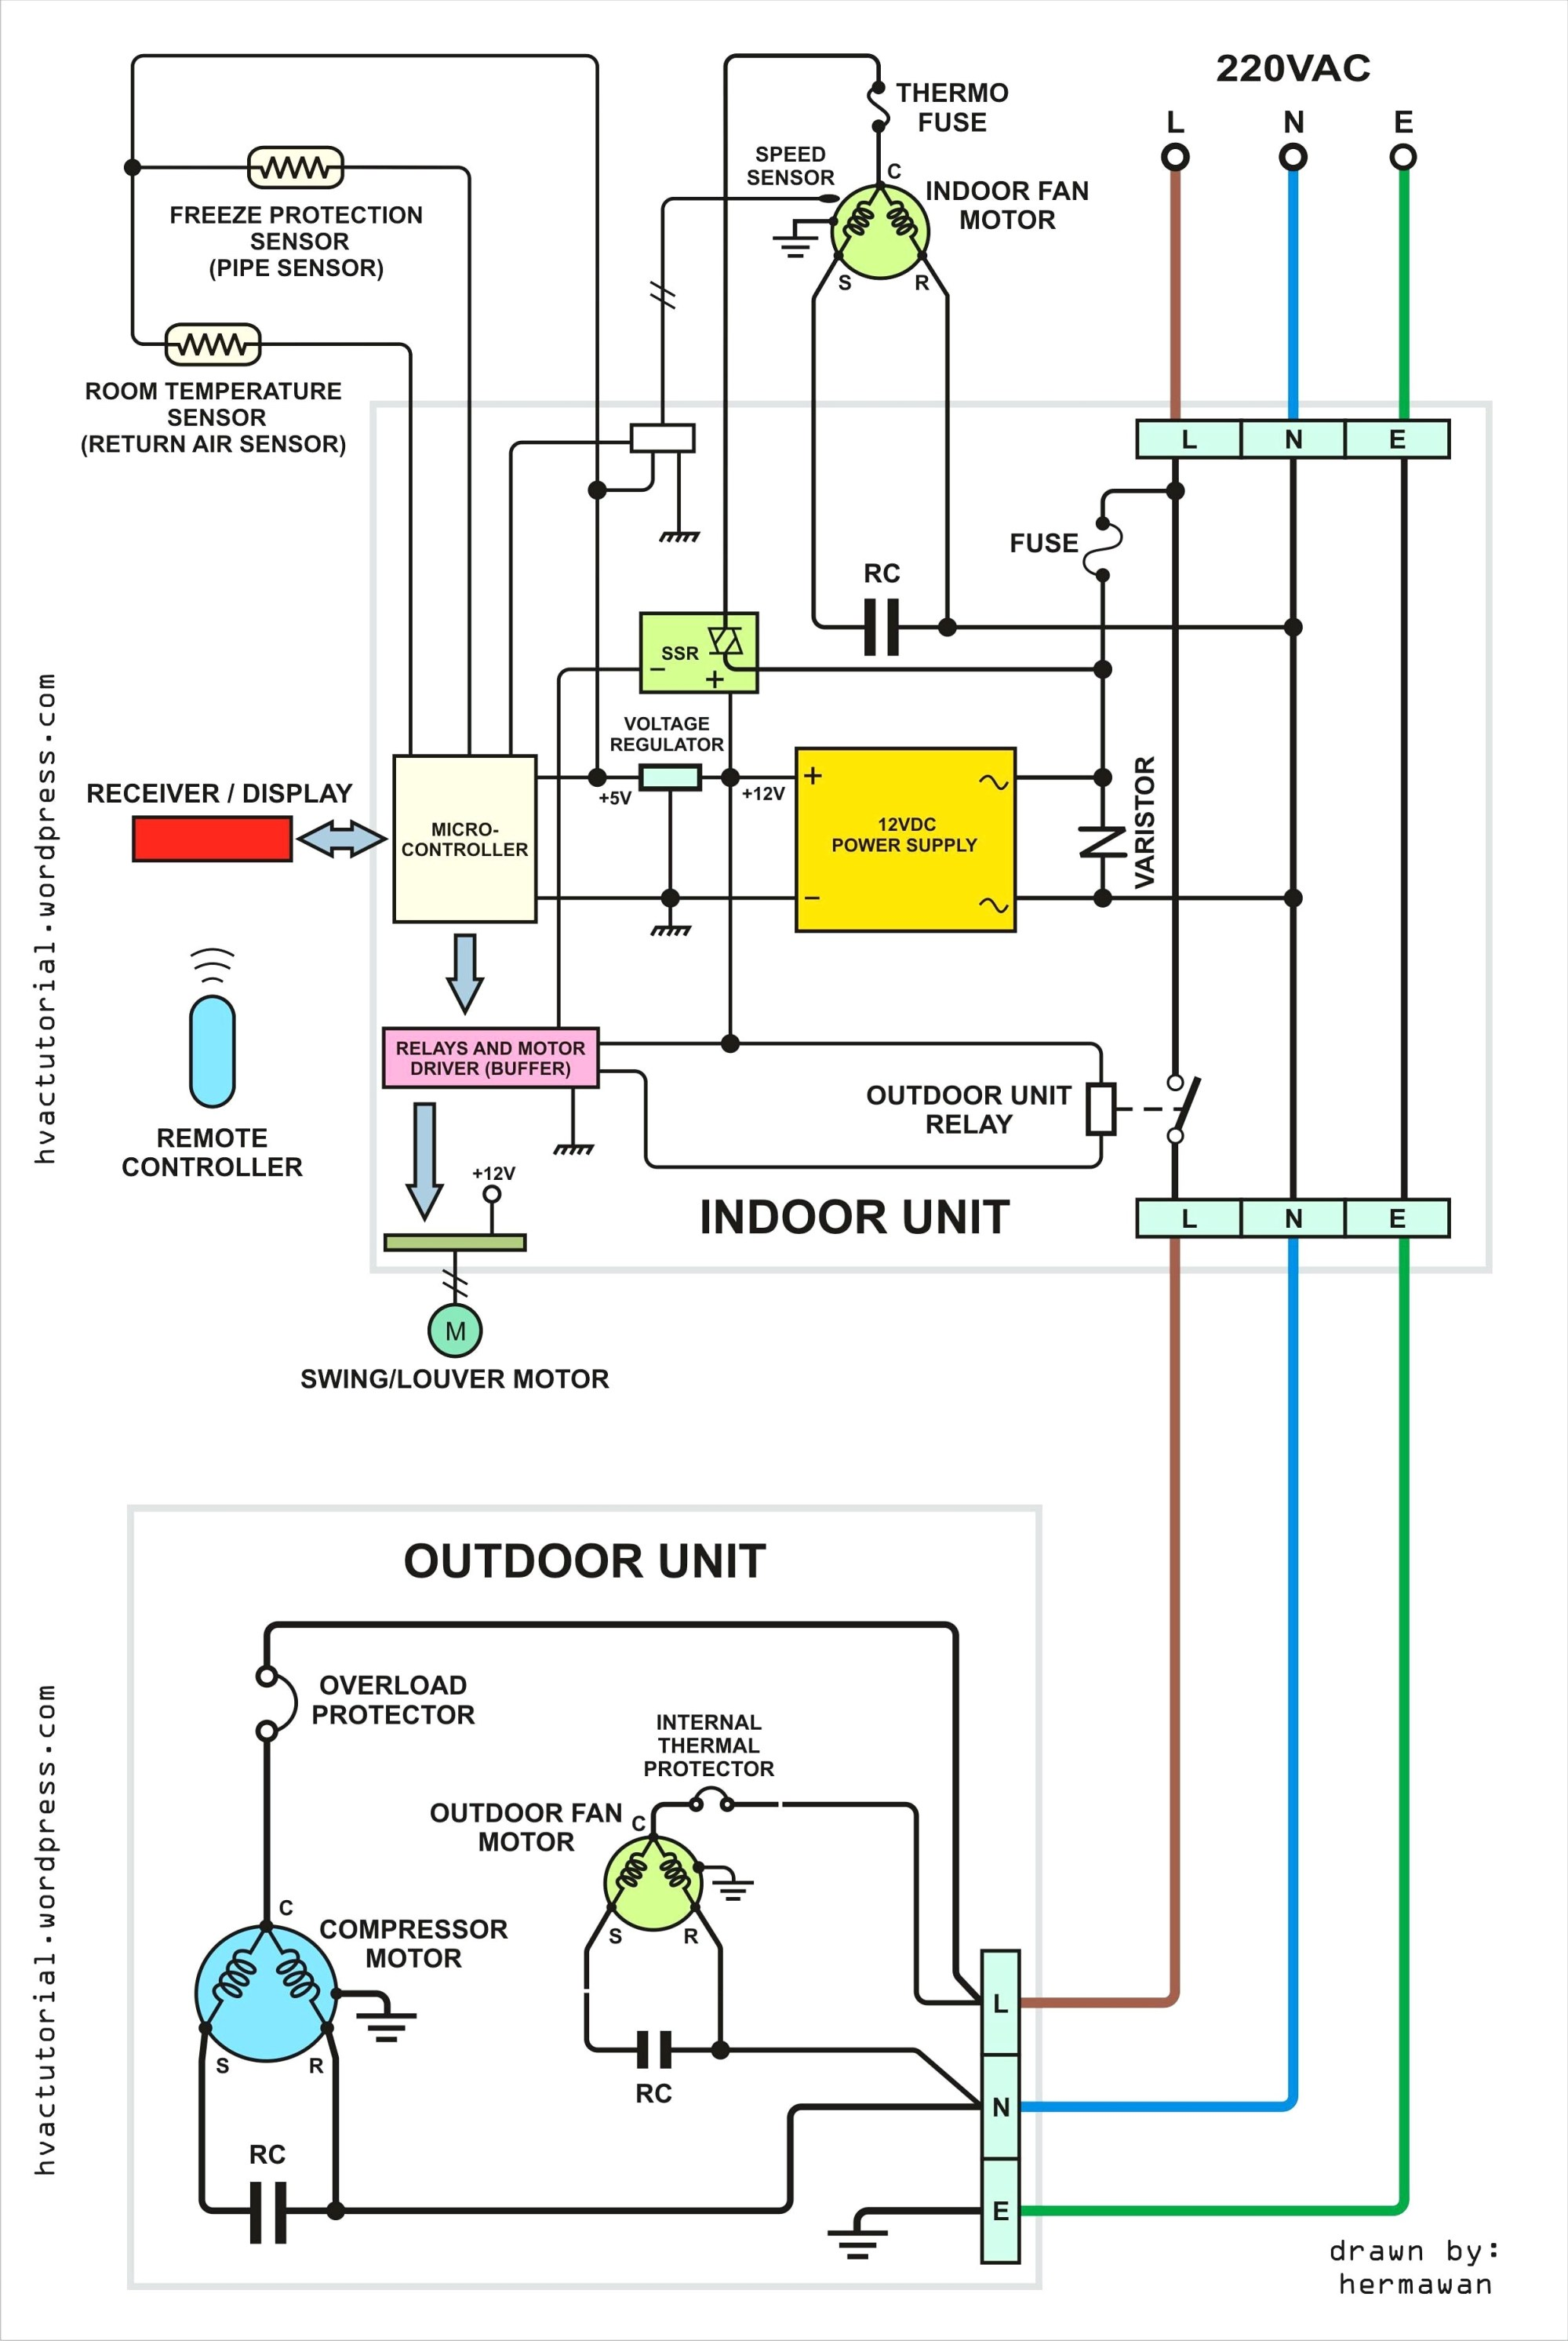 hight resolution of clark forklift ignition switch wiring diagram clark forklift ignition switch wiring diagram sample wiring diagram